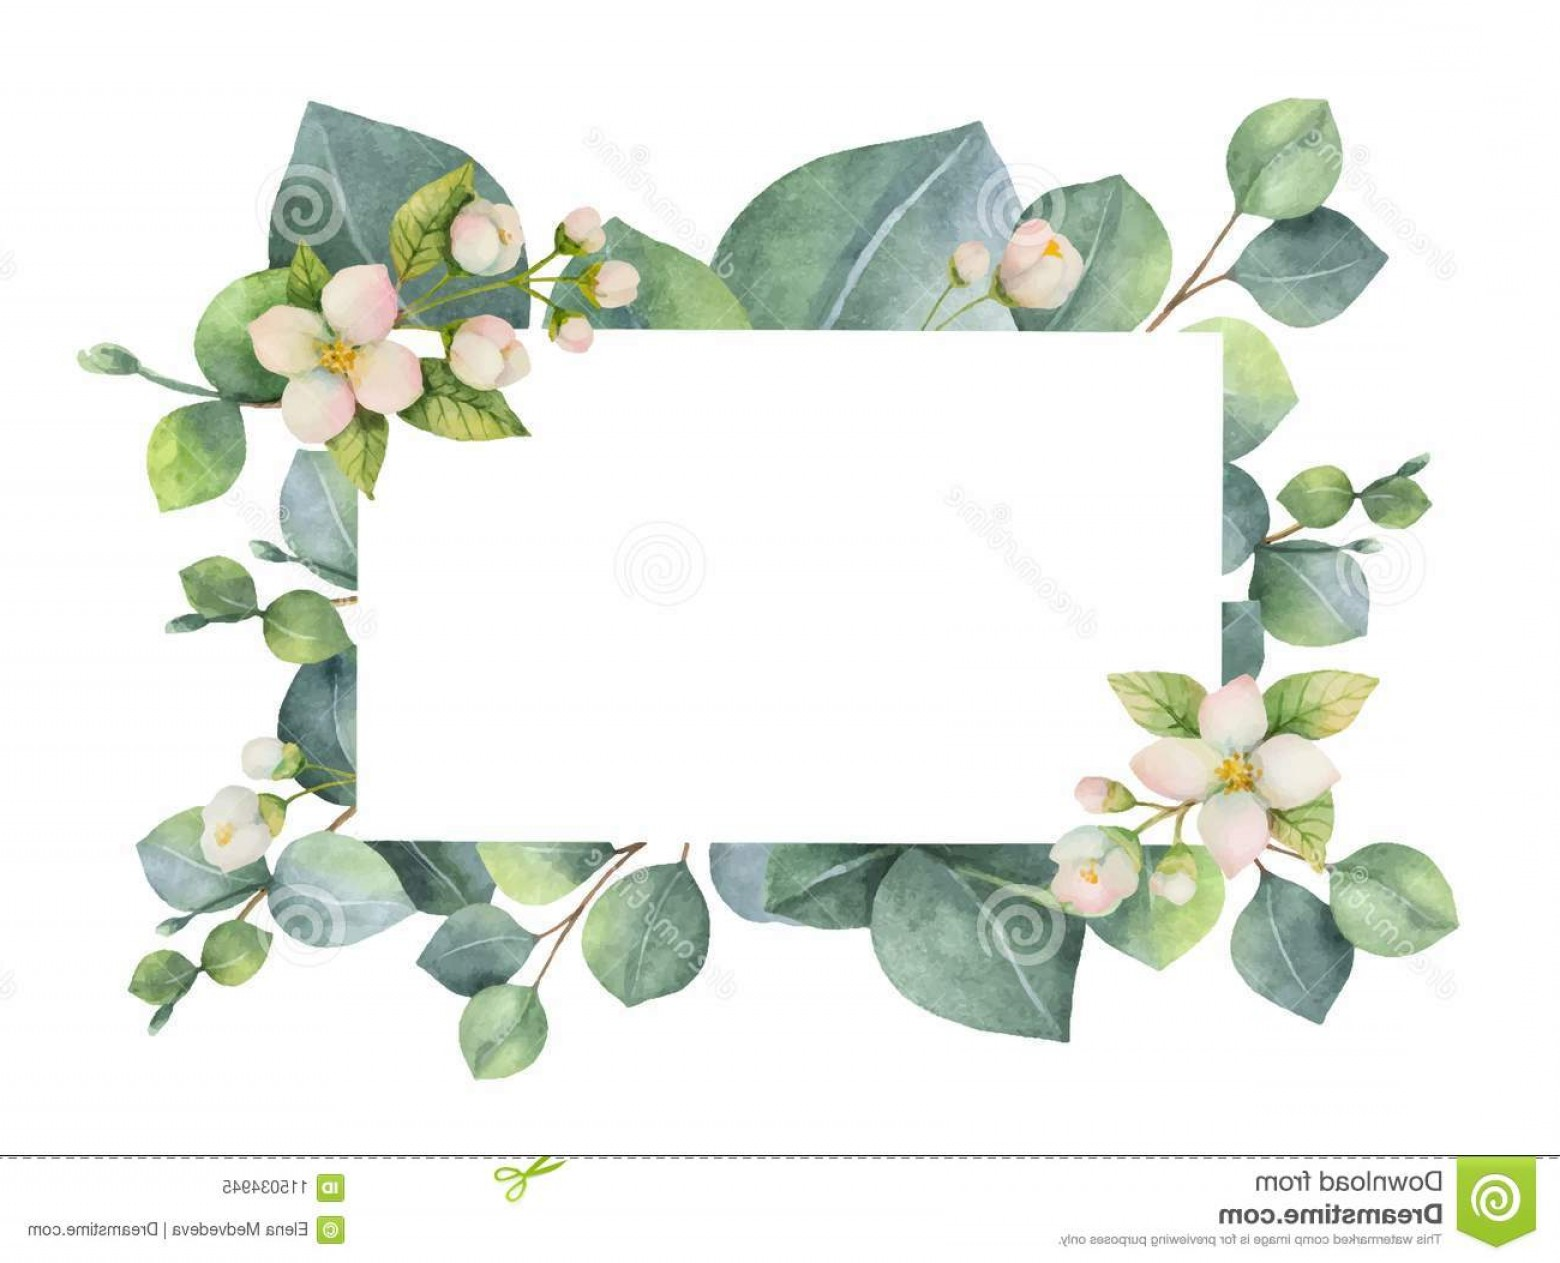 Green Flower Vector Designs: Watercolor Vector Green Floral Card Eucalyptus Leaves Jasmine Flowers Branches Isolated White Background Illustration Image